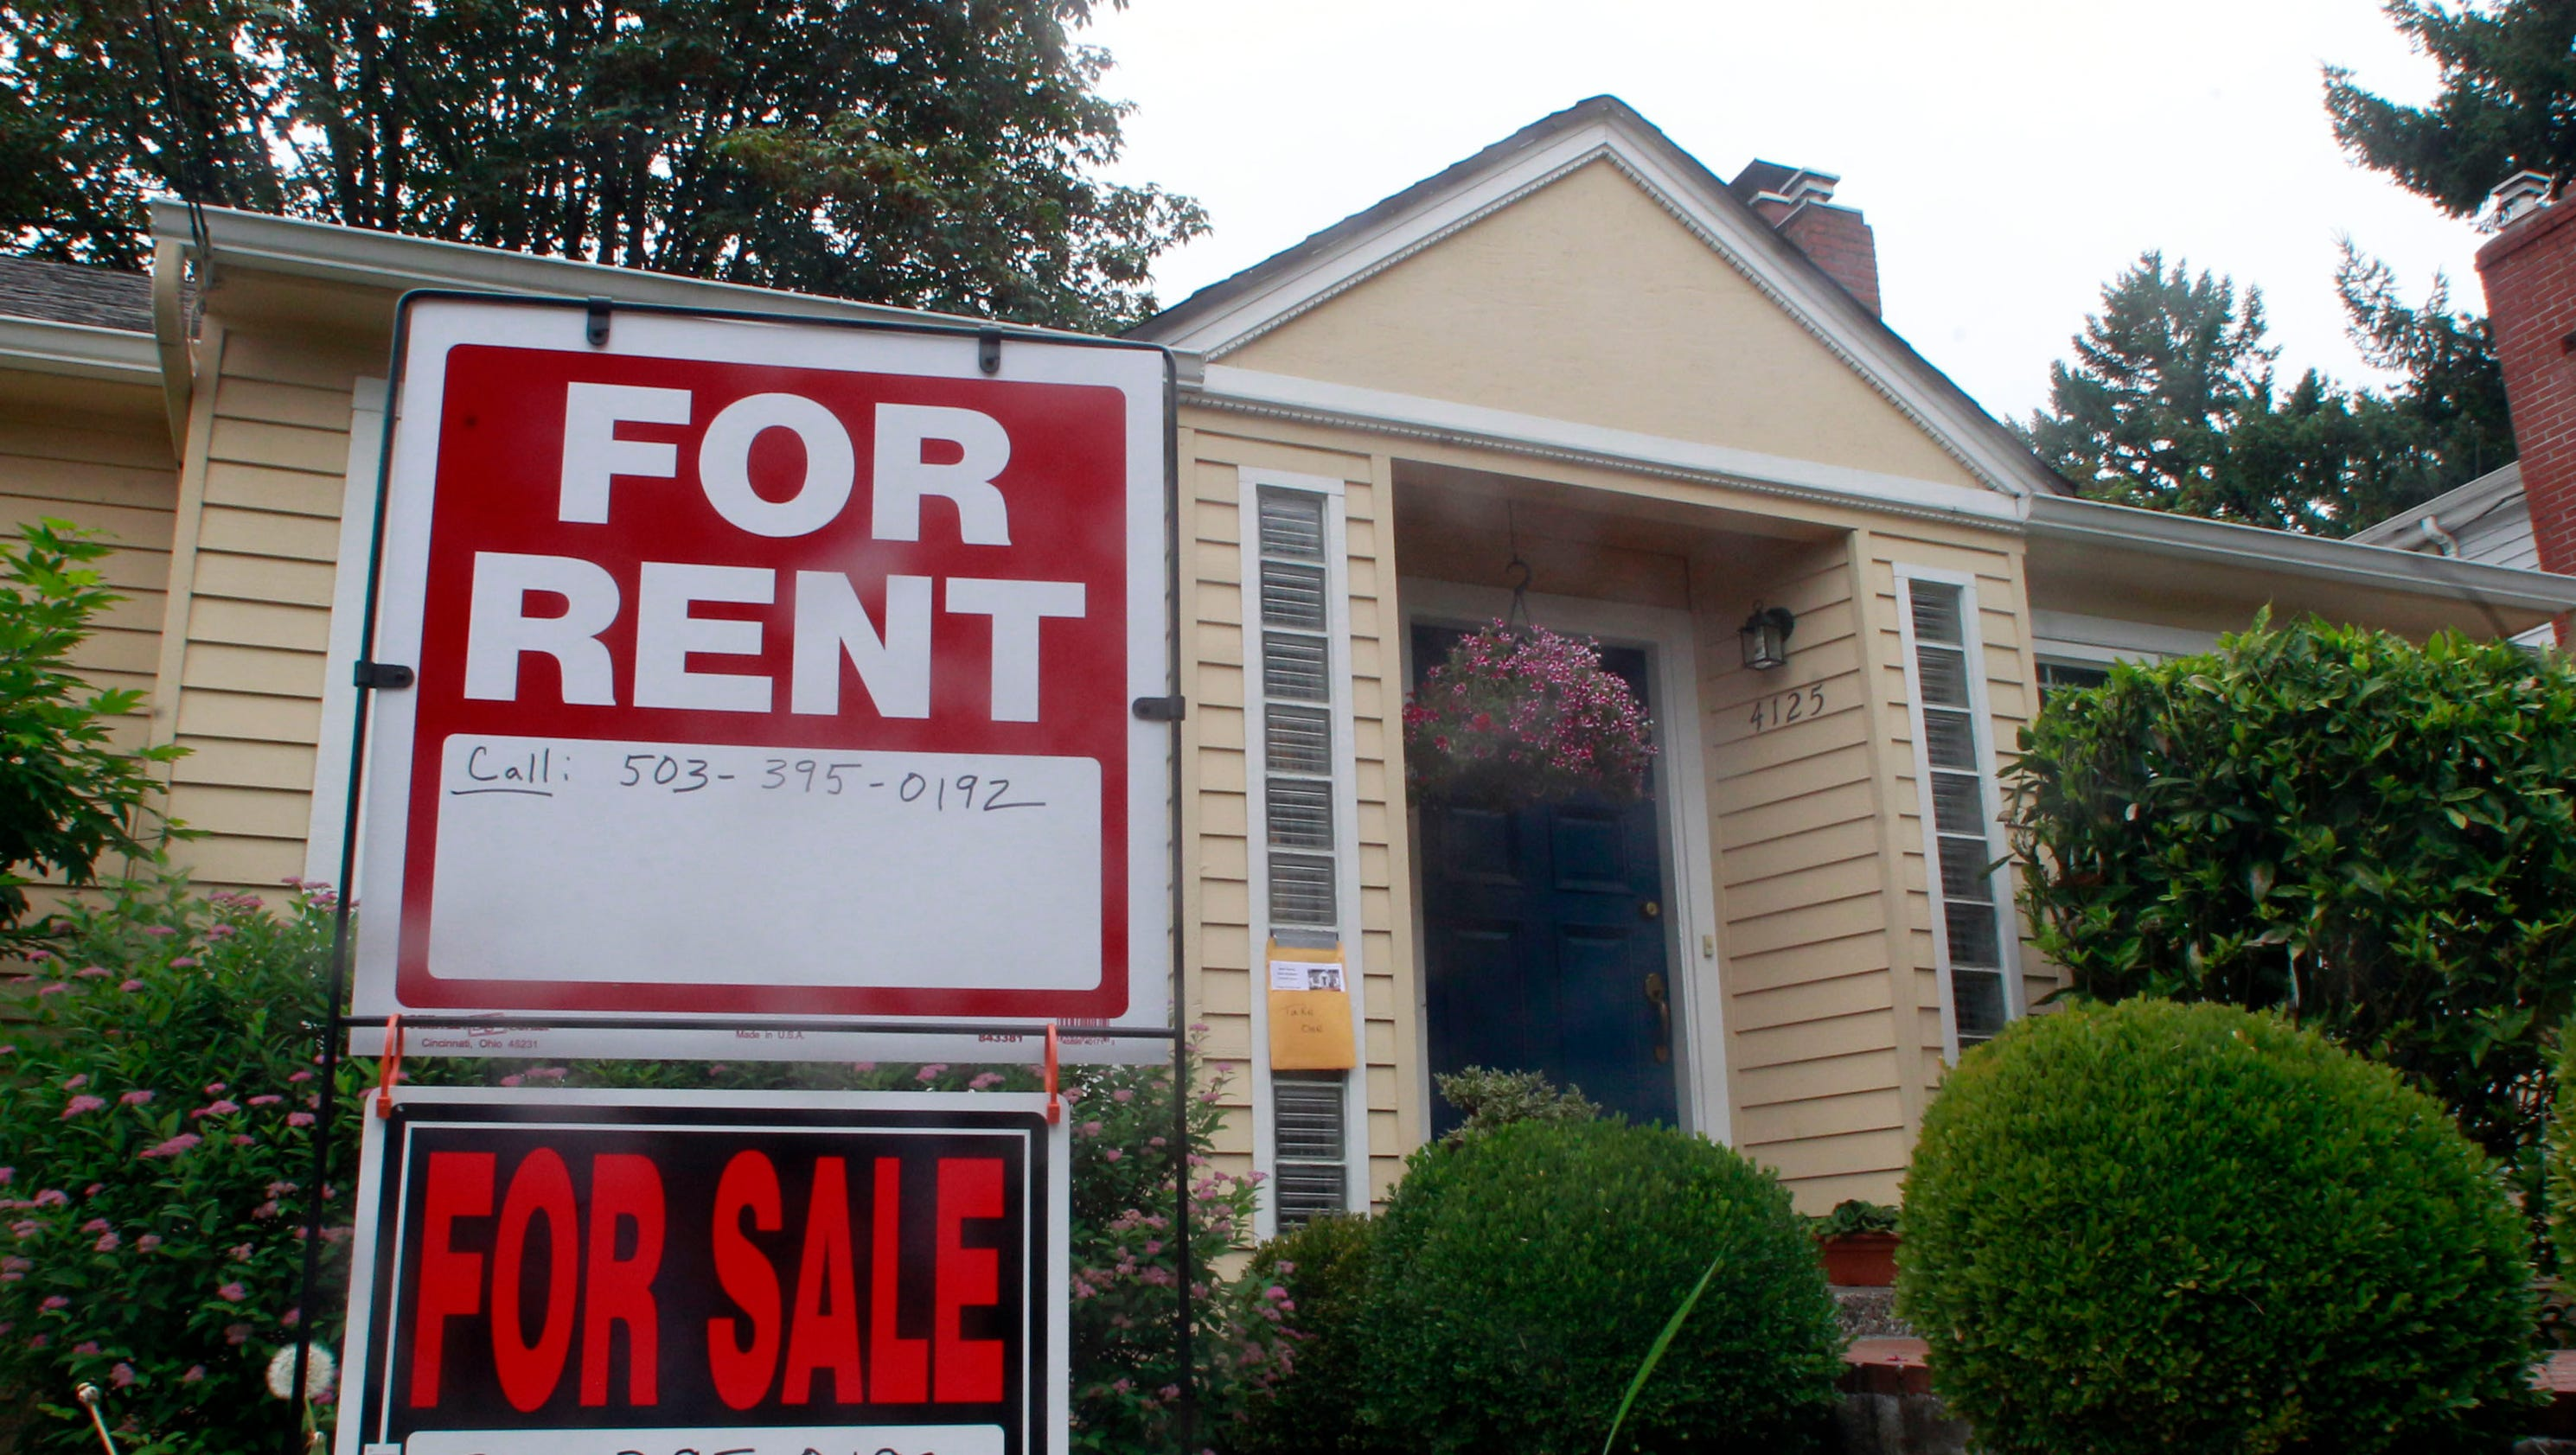 https://www.usatoday.com/story/money/personalfinance/real-estate/2018/05/18/millennials-spend-large-percentage-income-rent/609061002/